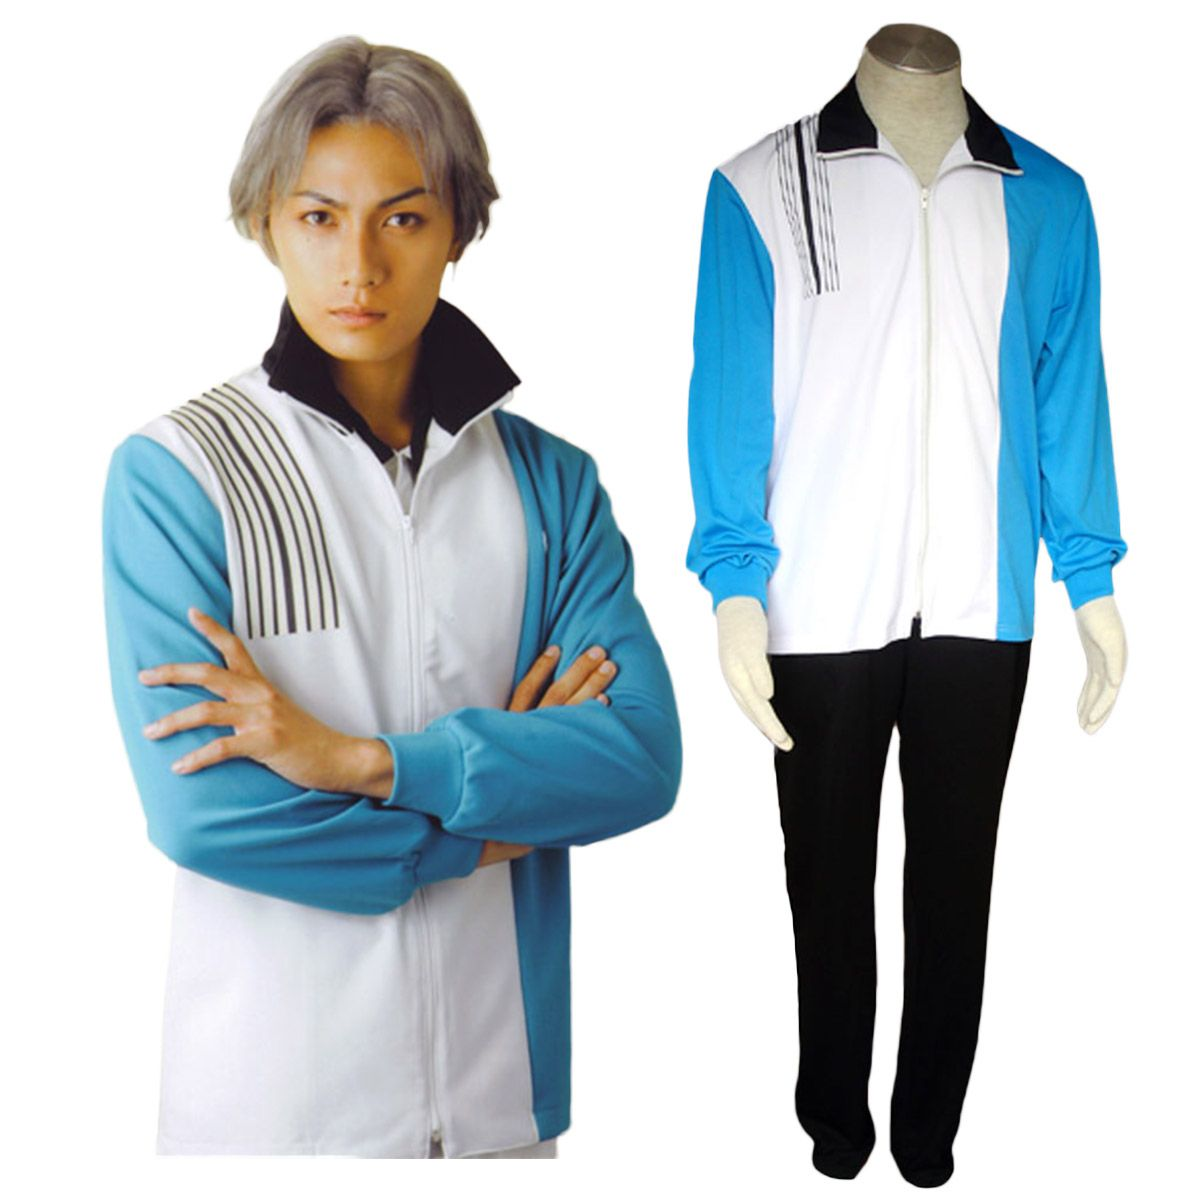 Deluxe The Prince Of Tennis Hyotel Gakuen Winter Uniforms Cosplay Costumes Cosplay Costumes The Prince Of Tennis Costumes